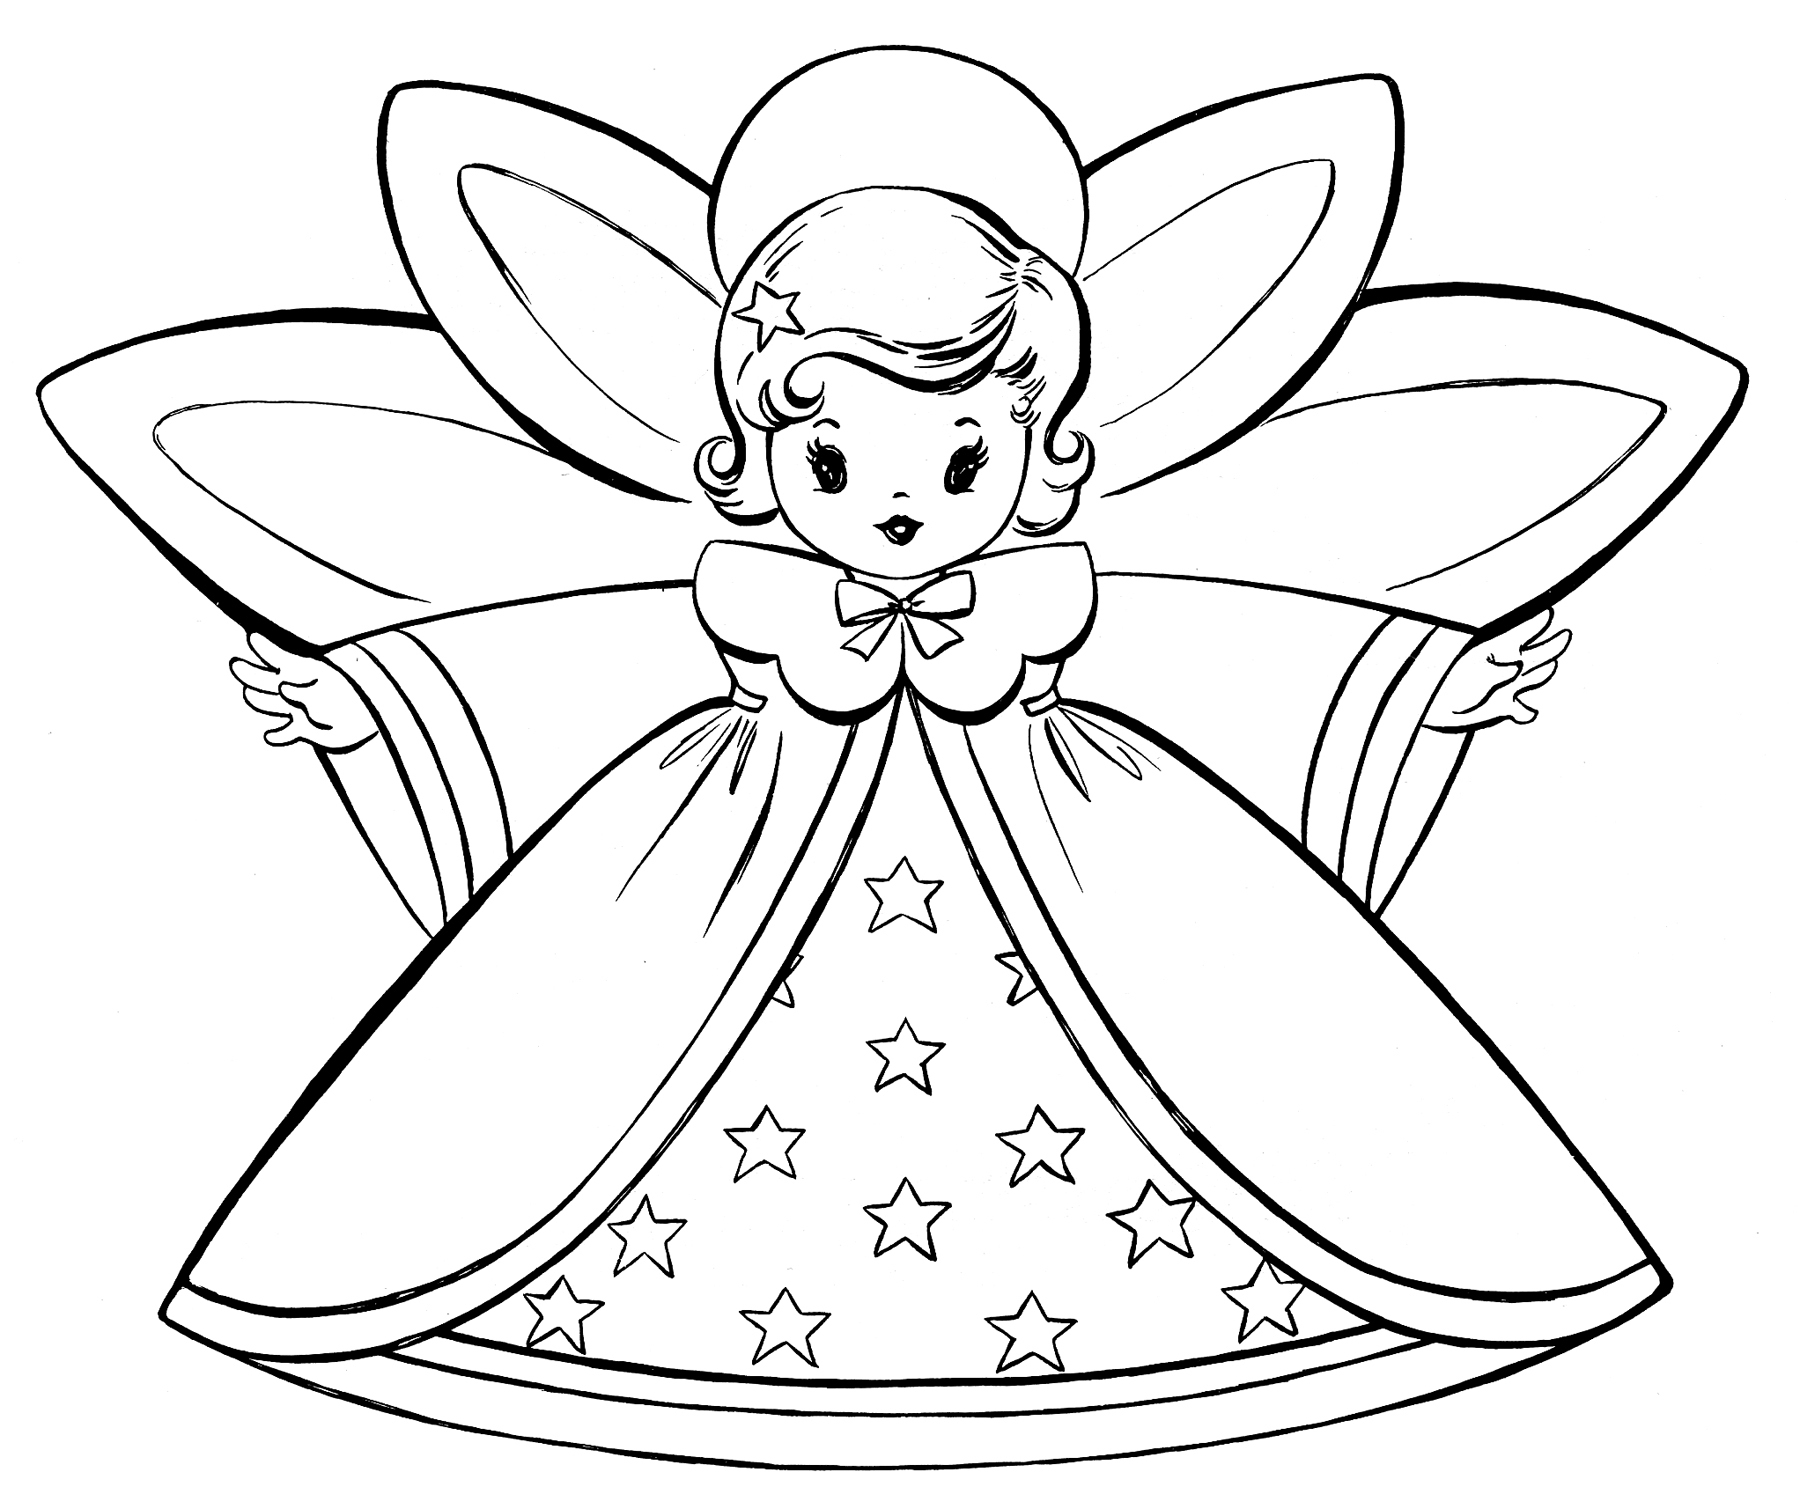 Free Christmas Coloring Pages - Retro Angels - The Graphics Fairy - Free Printable Angels